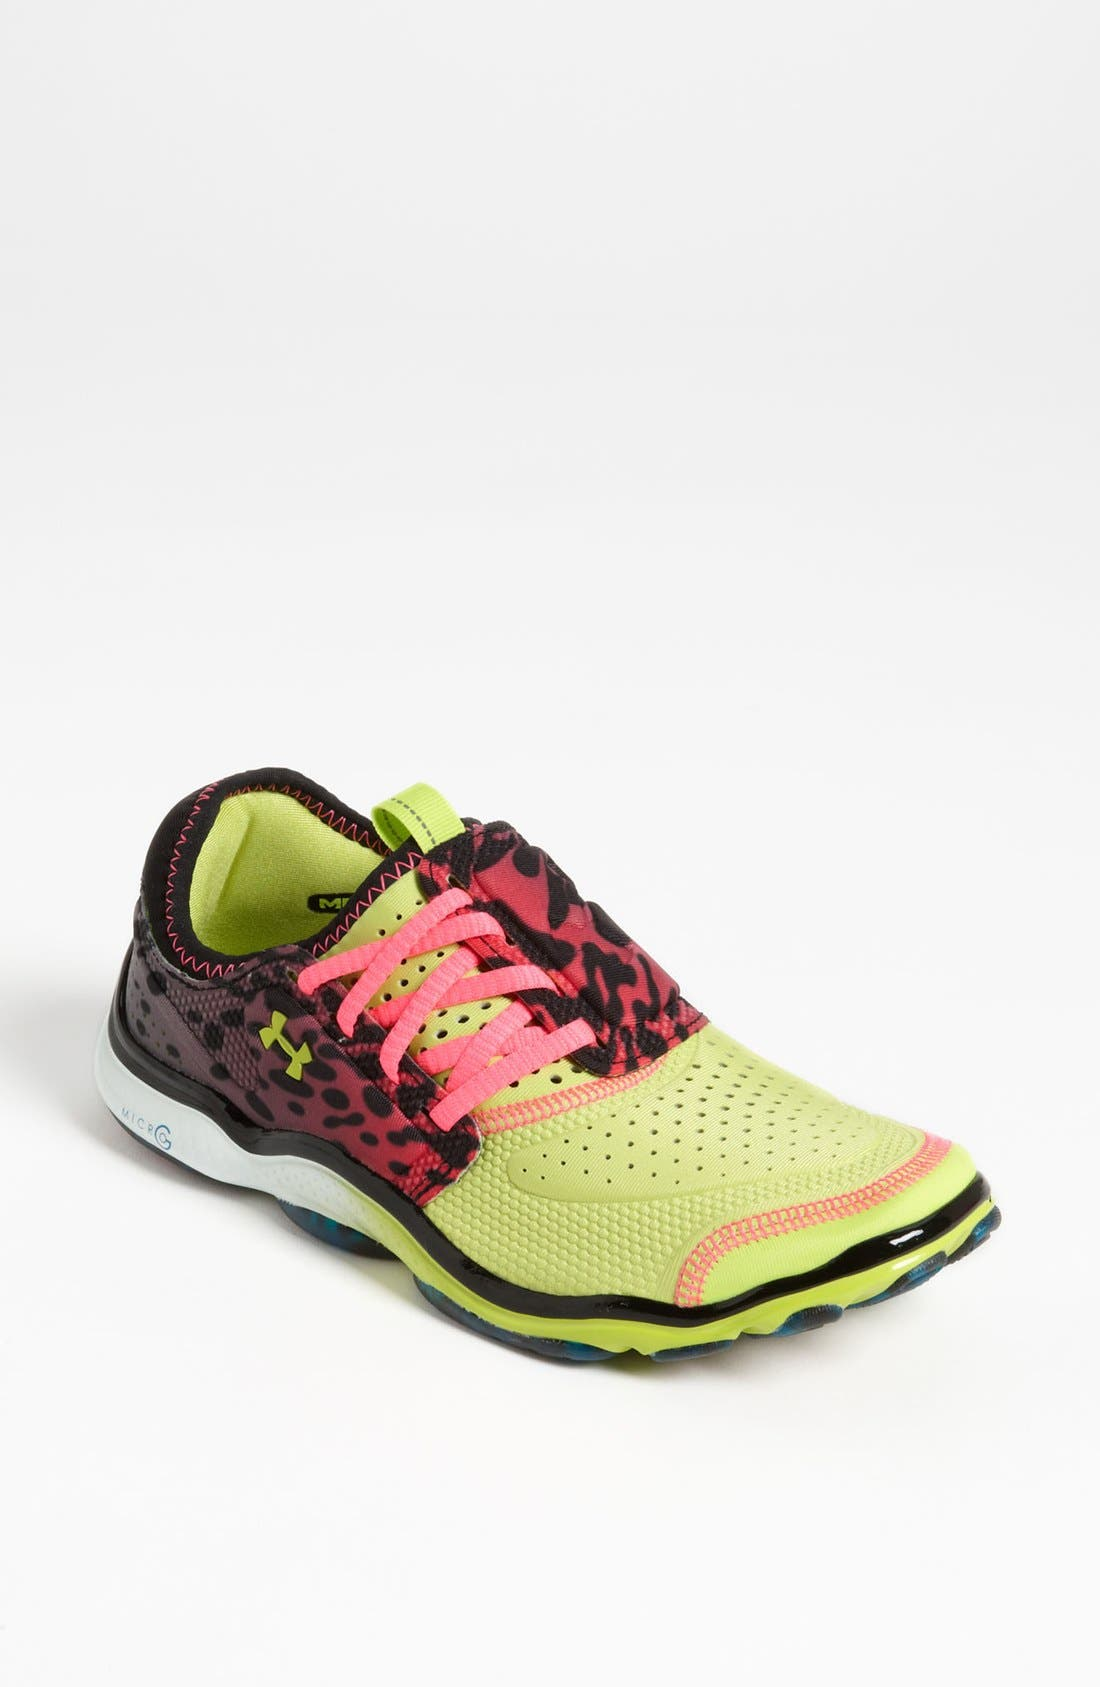 Alternate Image 1 Selected - Under Armour 'Micro G® Toxic' Running Shoe (Women)